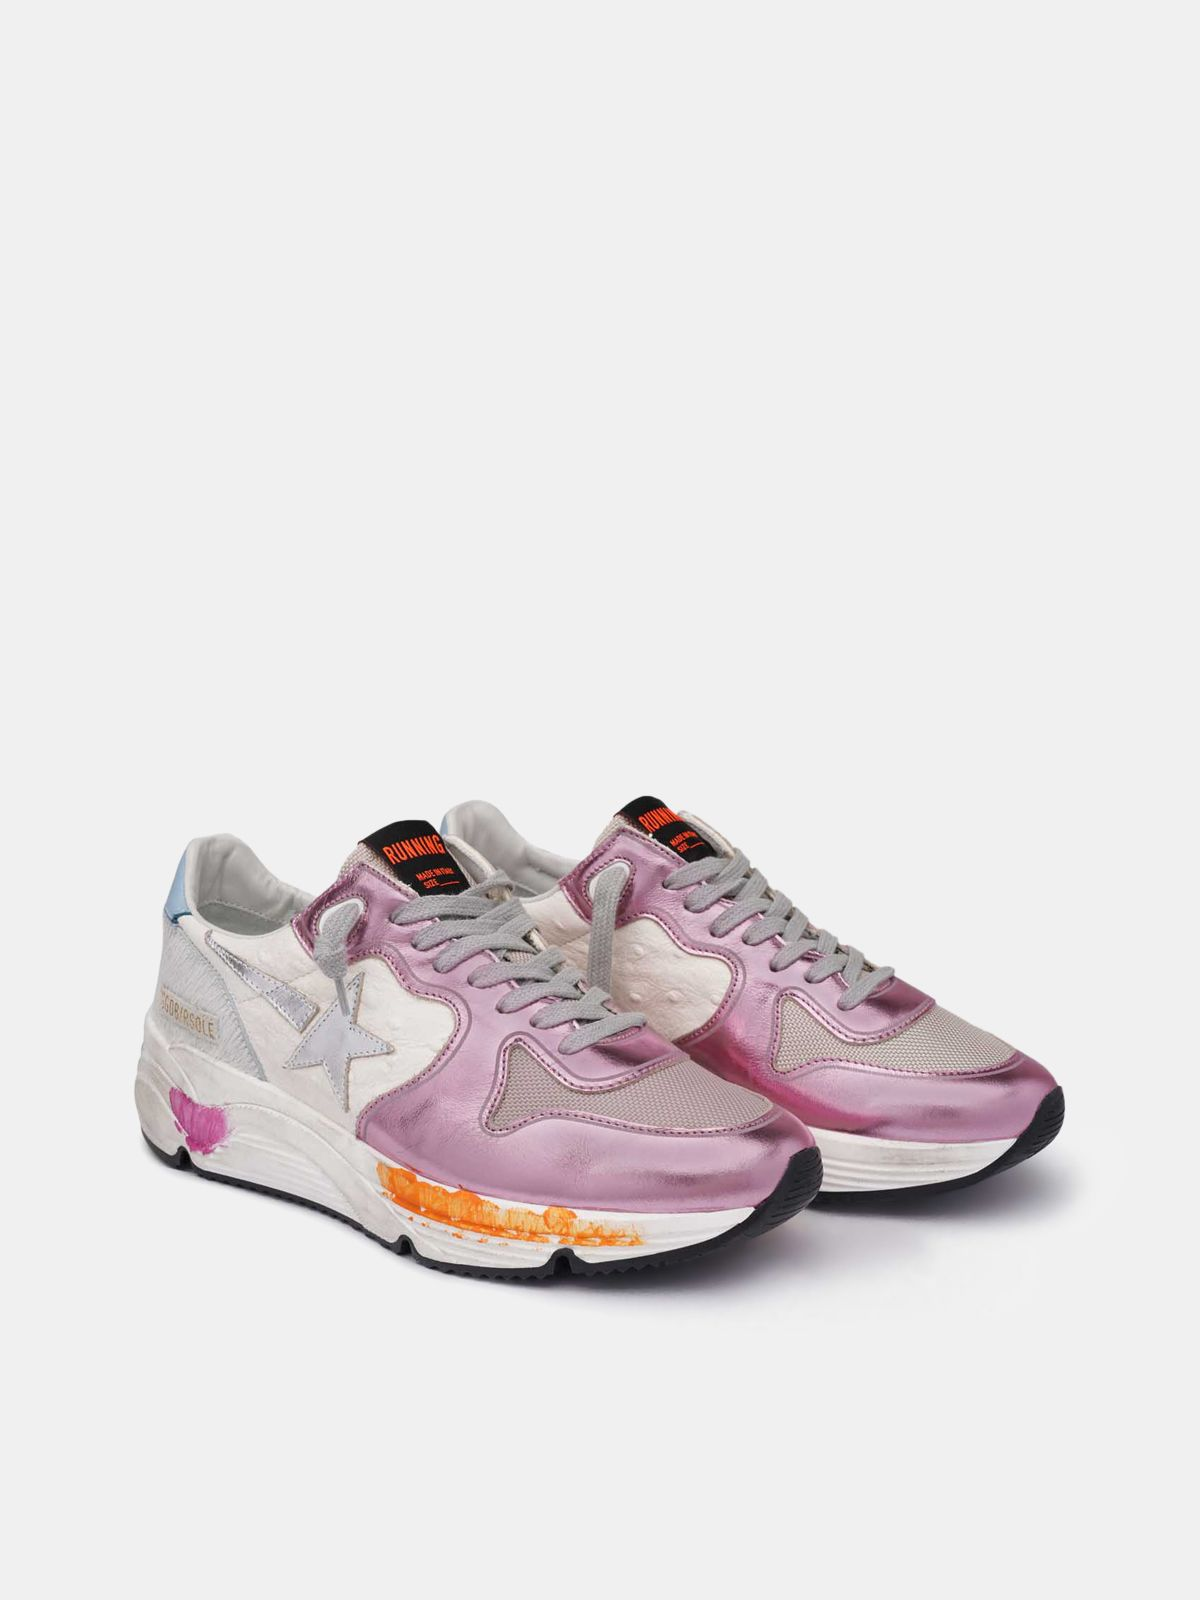 Golden Goose - Running Sole sneakers in laminated pink with silver star in